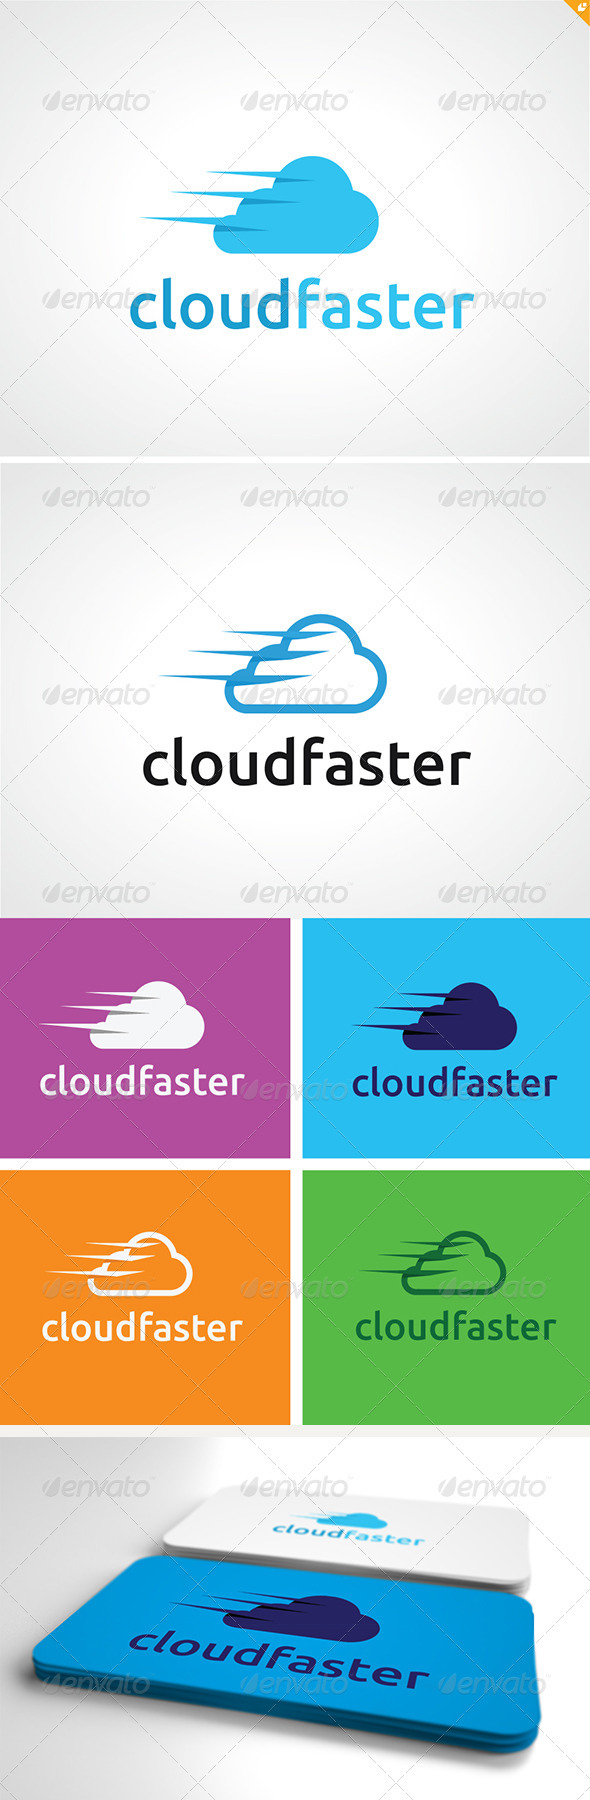 Cloud Faster Logo - Nature Logo Templates